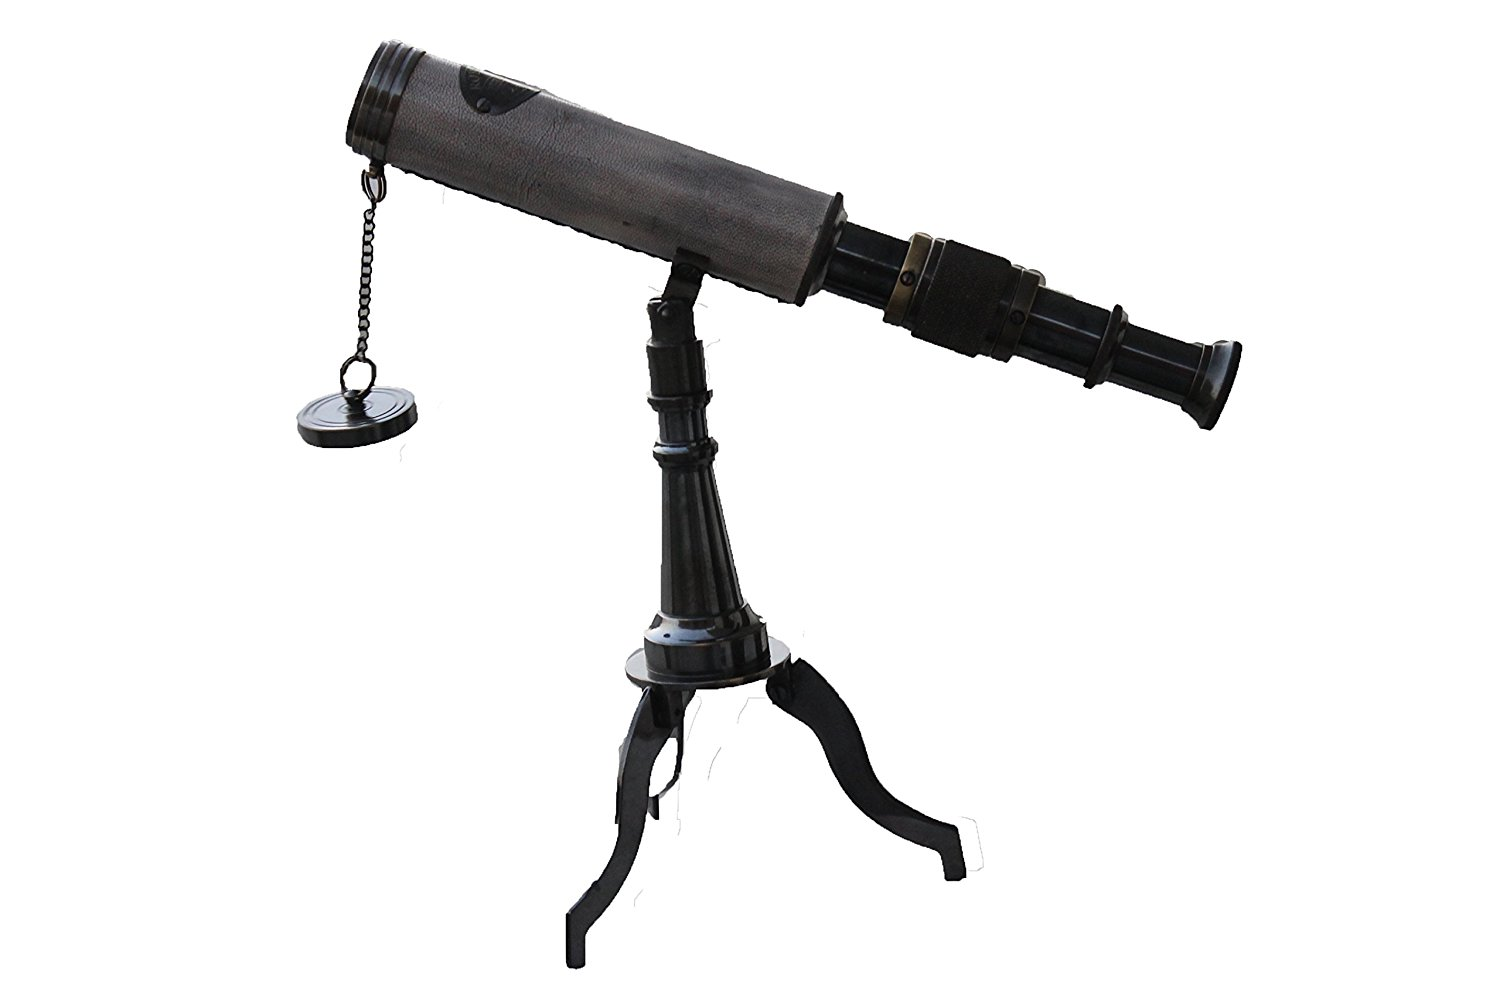 """PARIJAT HANDICRAFT 10"""" Antique Finished Travel Telescope with Stable Tripod Vintage Brass Telescope on Tripod Stand Telescope for Home Decor, Table accessory & Travel, Hiking accessory Perfect"""